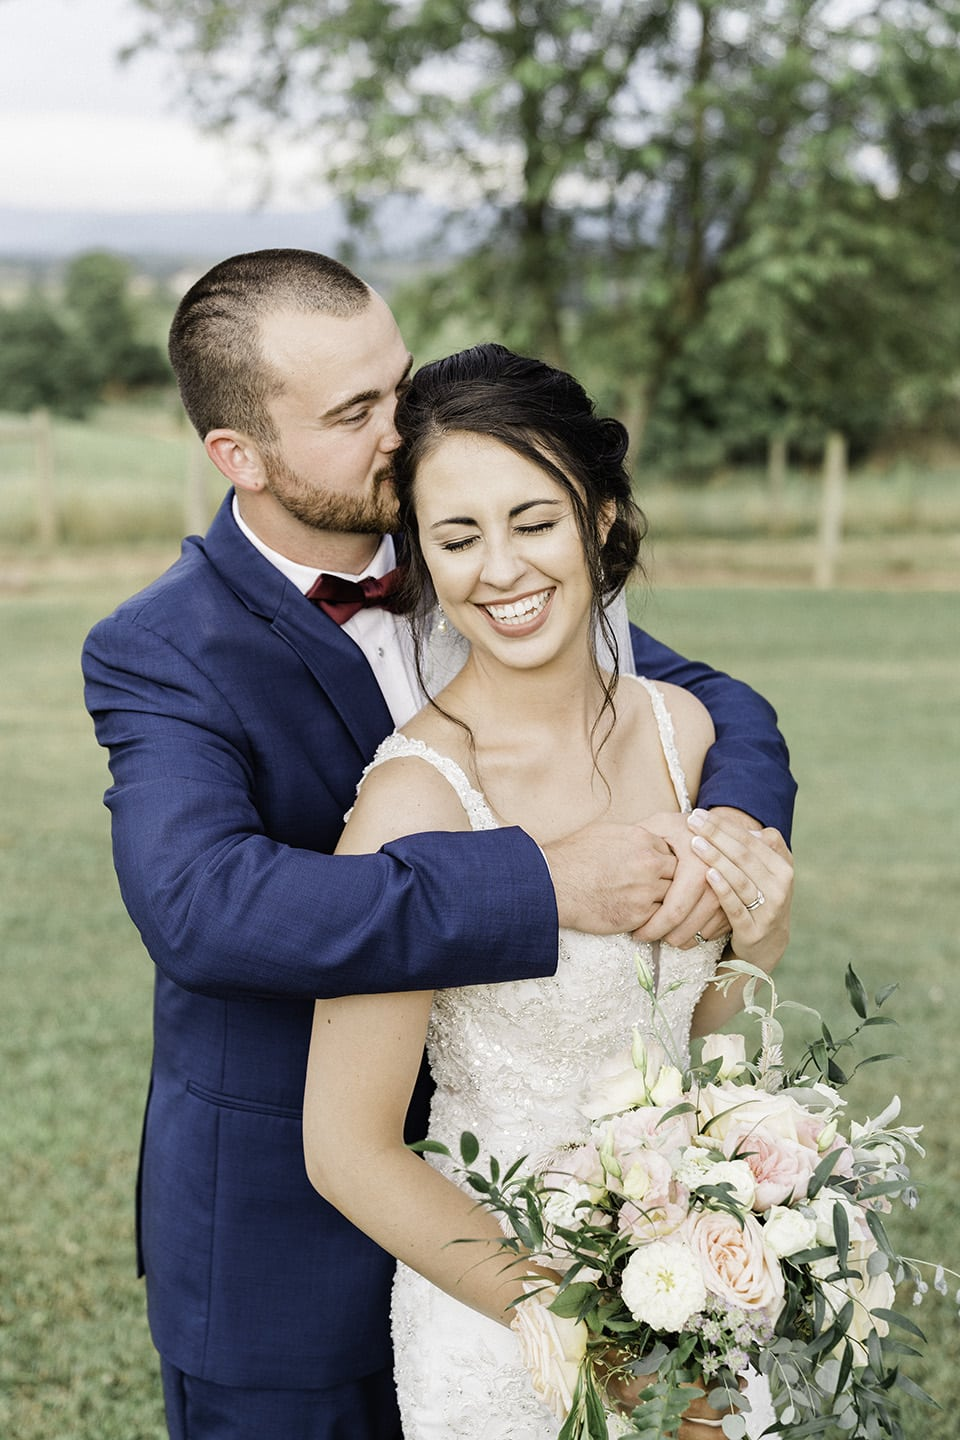 Groom hugs bride from behind while she smiles